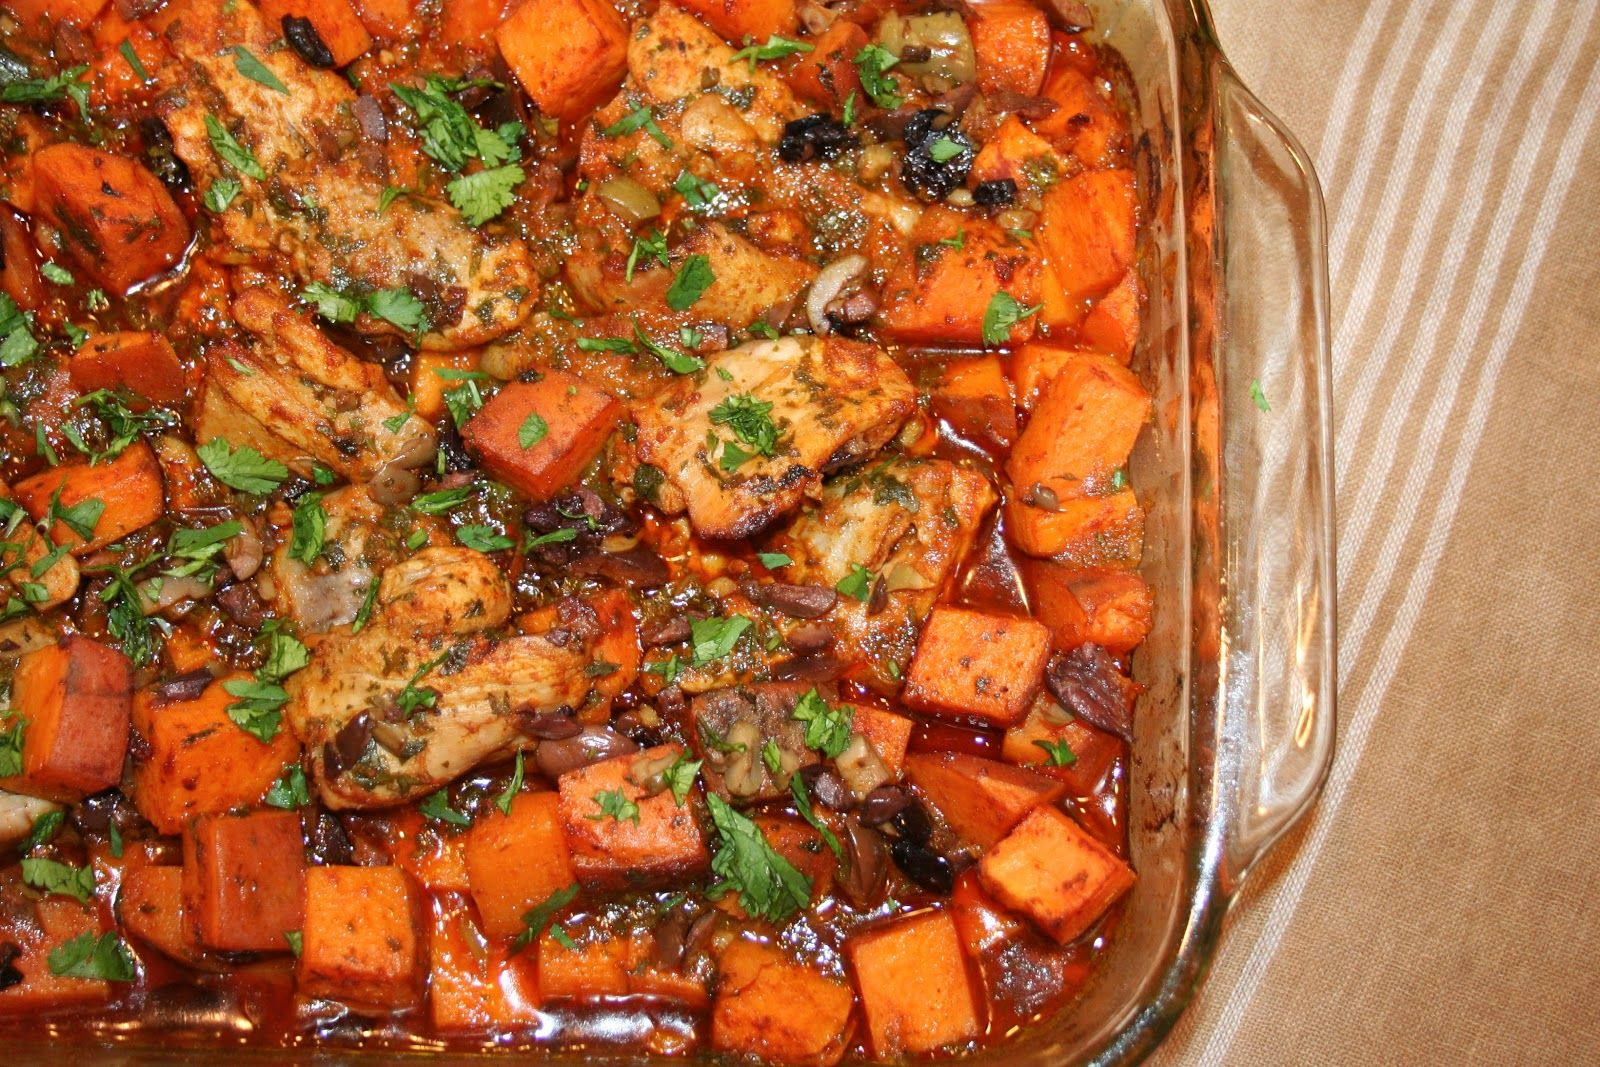 Chili-Citrus Chicken with Sweet Potatoes & Olives